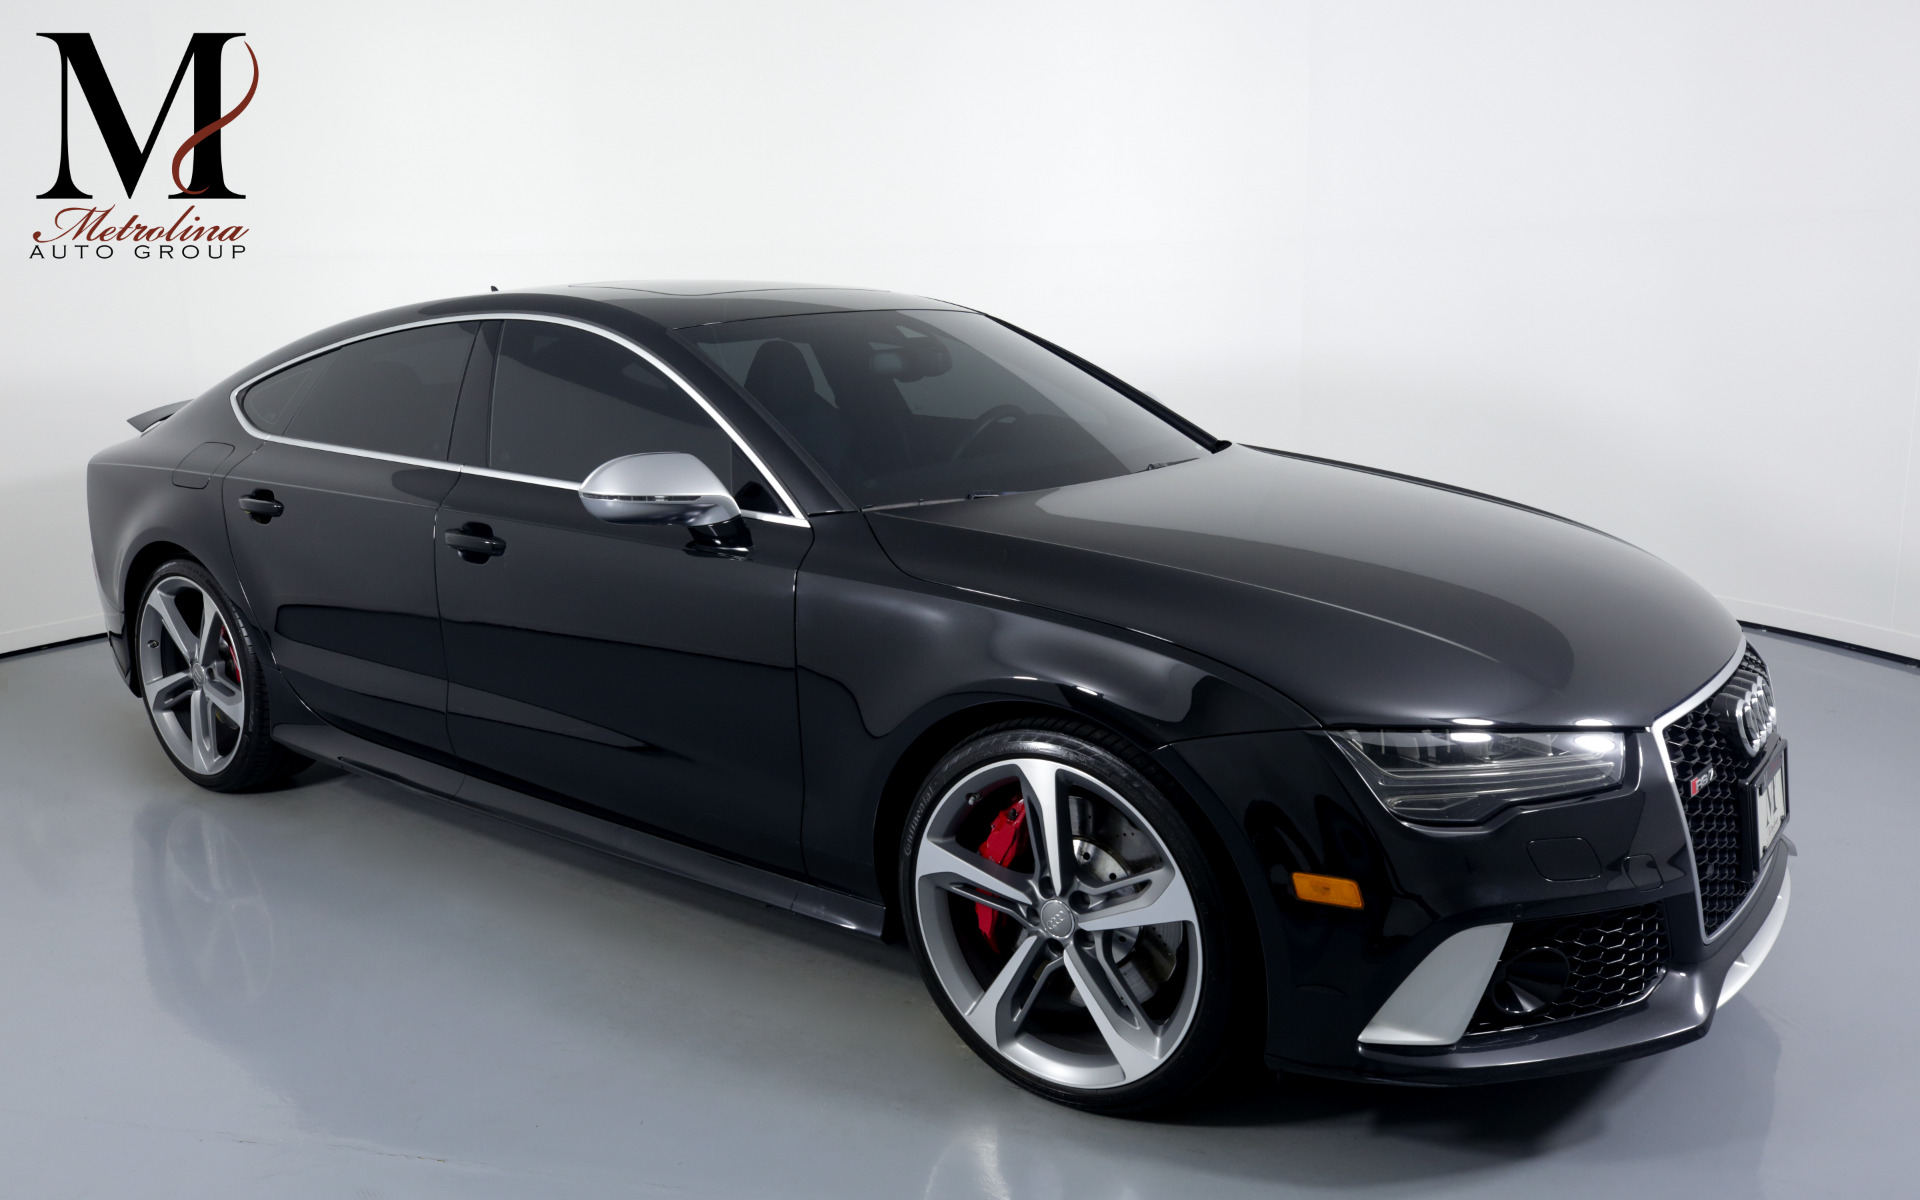 Used 2016 Audi RS 7 4.0T quattro Prestige for sale $68,456 at Metrolina Auto Group in Charlotte NC 28217 - 1